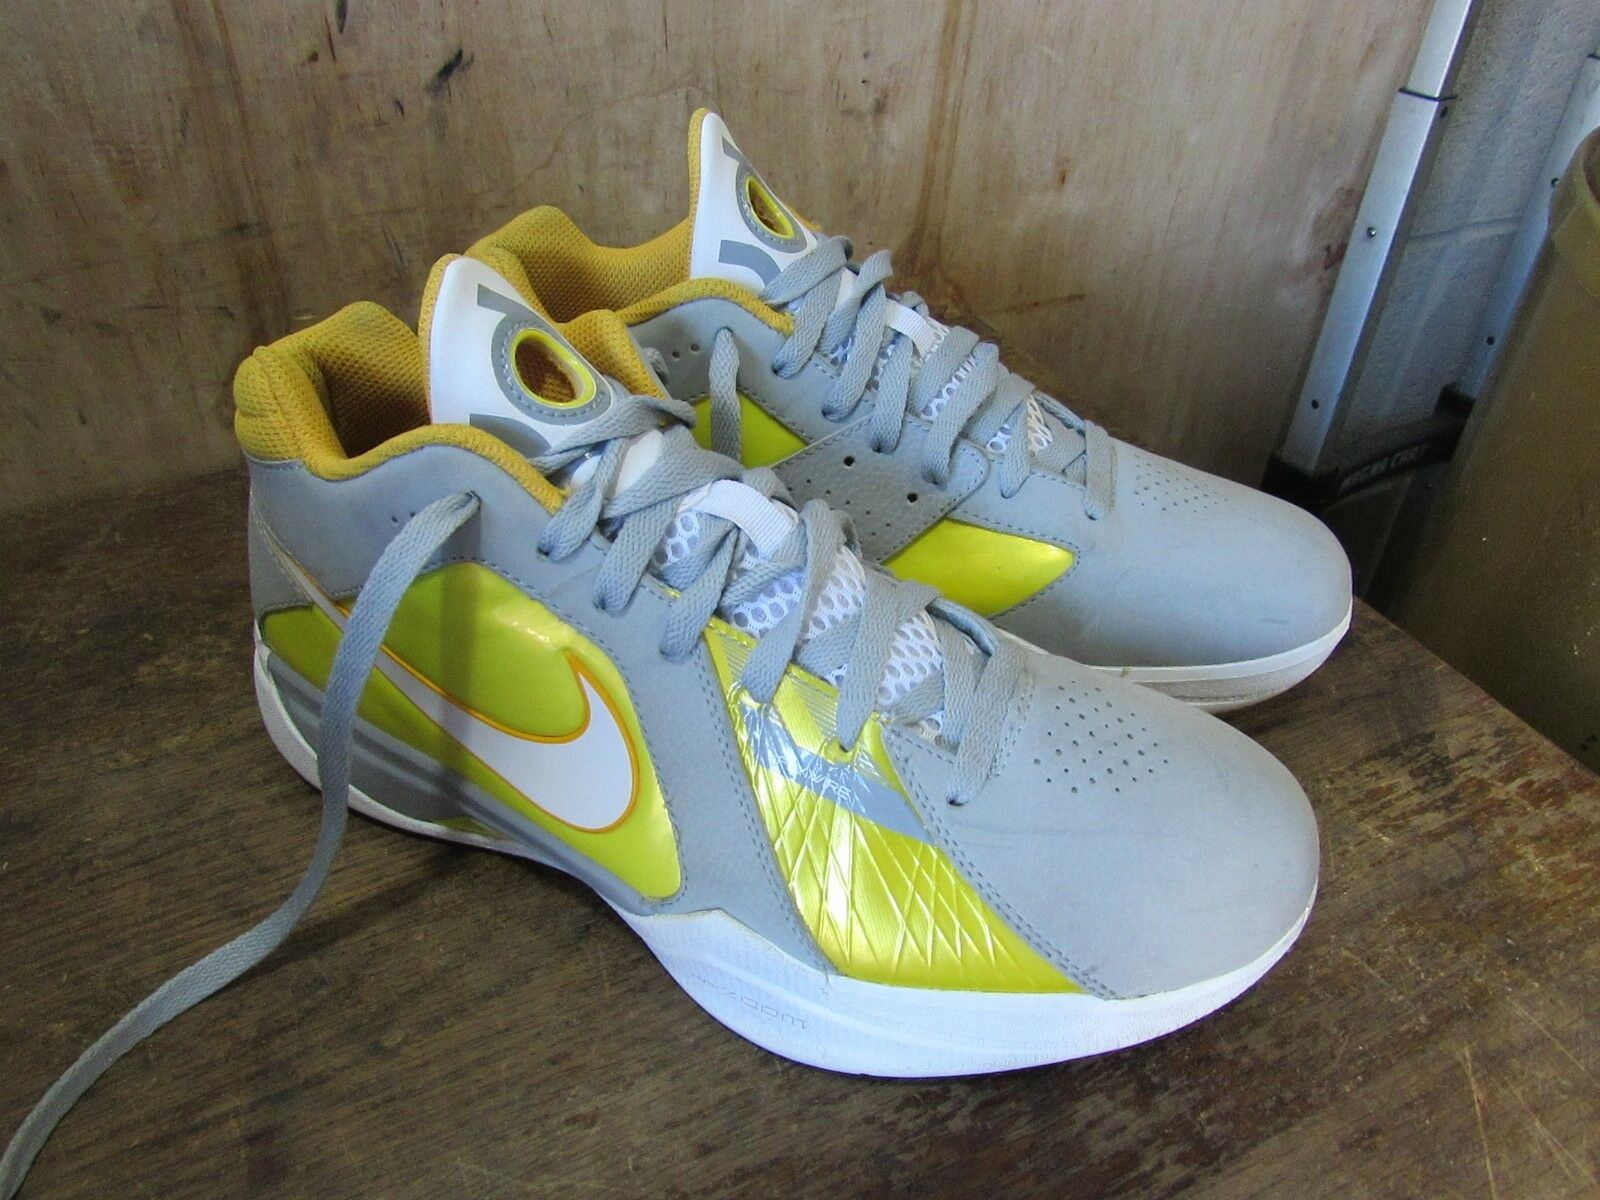 NIKE Zoom KD III Wolf Grey Del Sol Flywire Size 003 9 Basketball Shoes 417279 003 Size cc4037